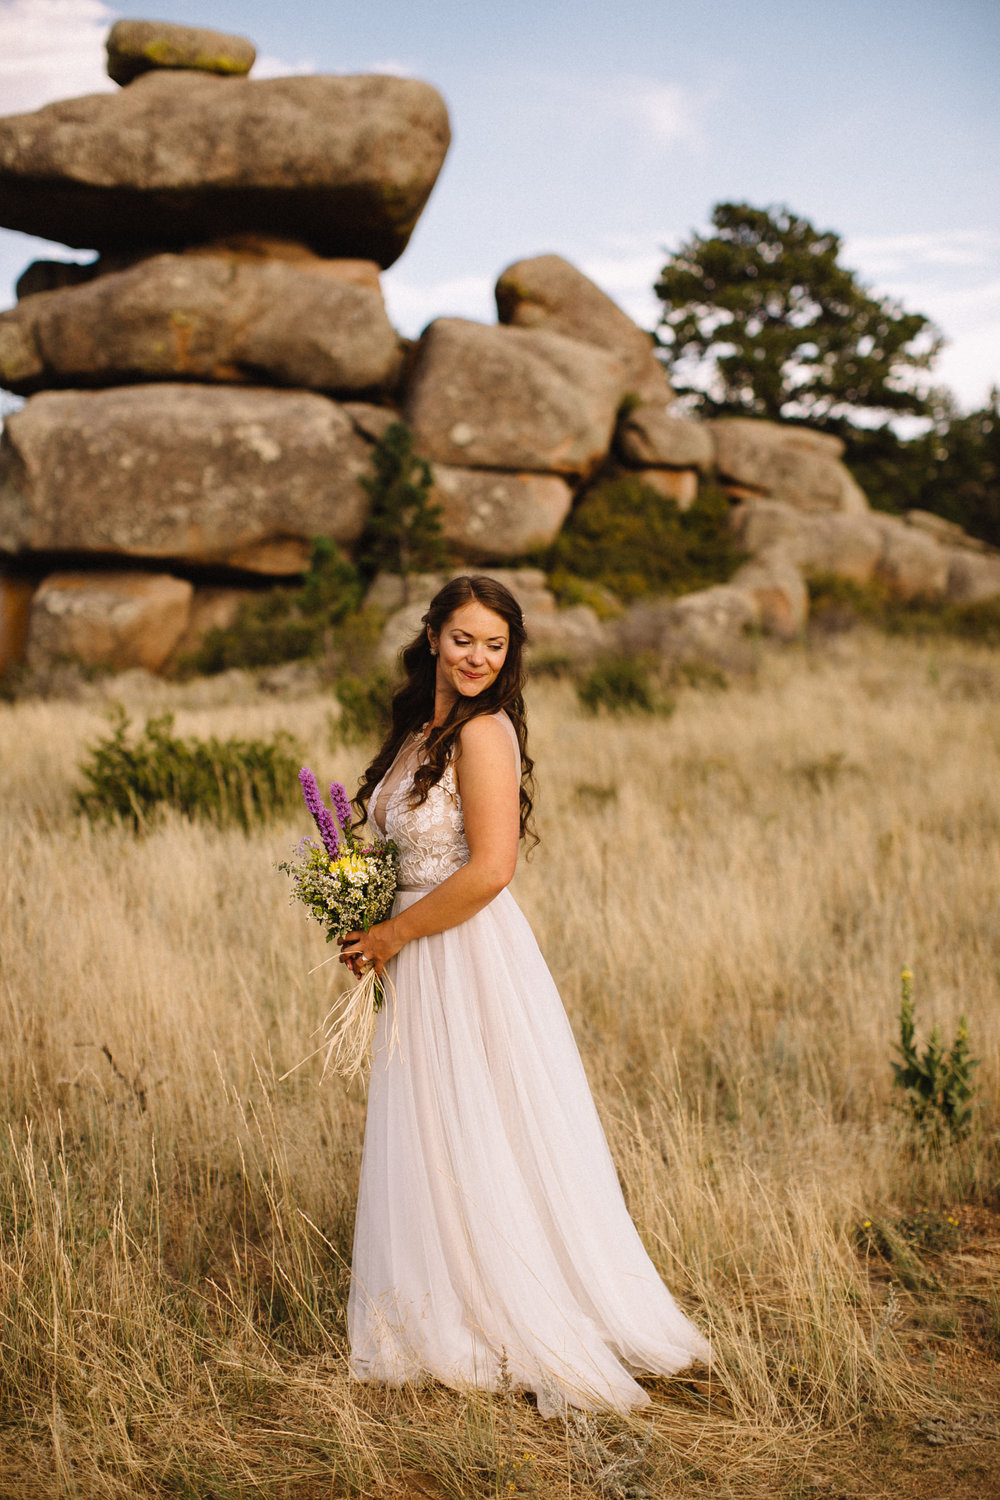 Liz Osban Photography Vedauwoo Buford Wyoming Happy Jack Wedding Elopement Destination Small Forest Cheyenne Laramie Medicine Bow National Forest Portraits Sarah Taylor14.jpg